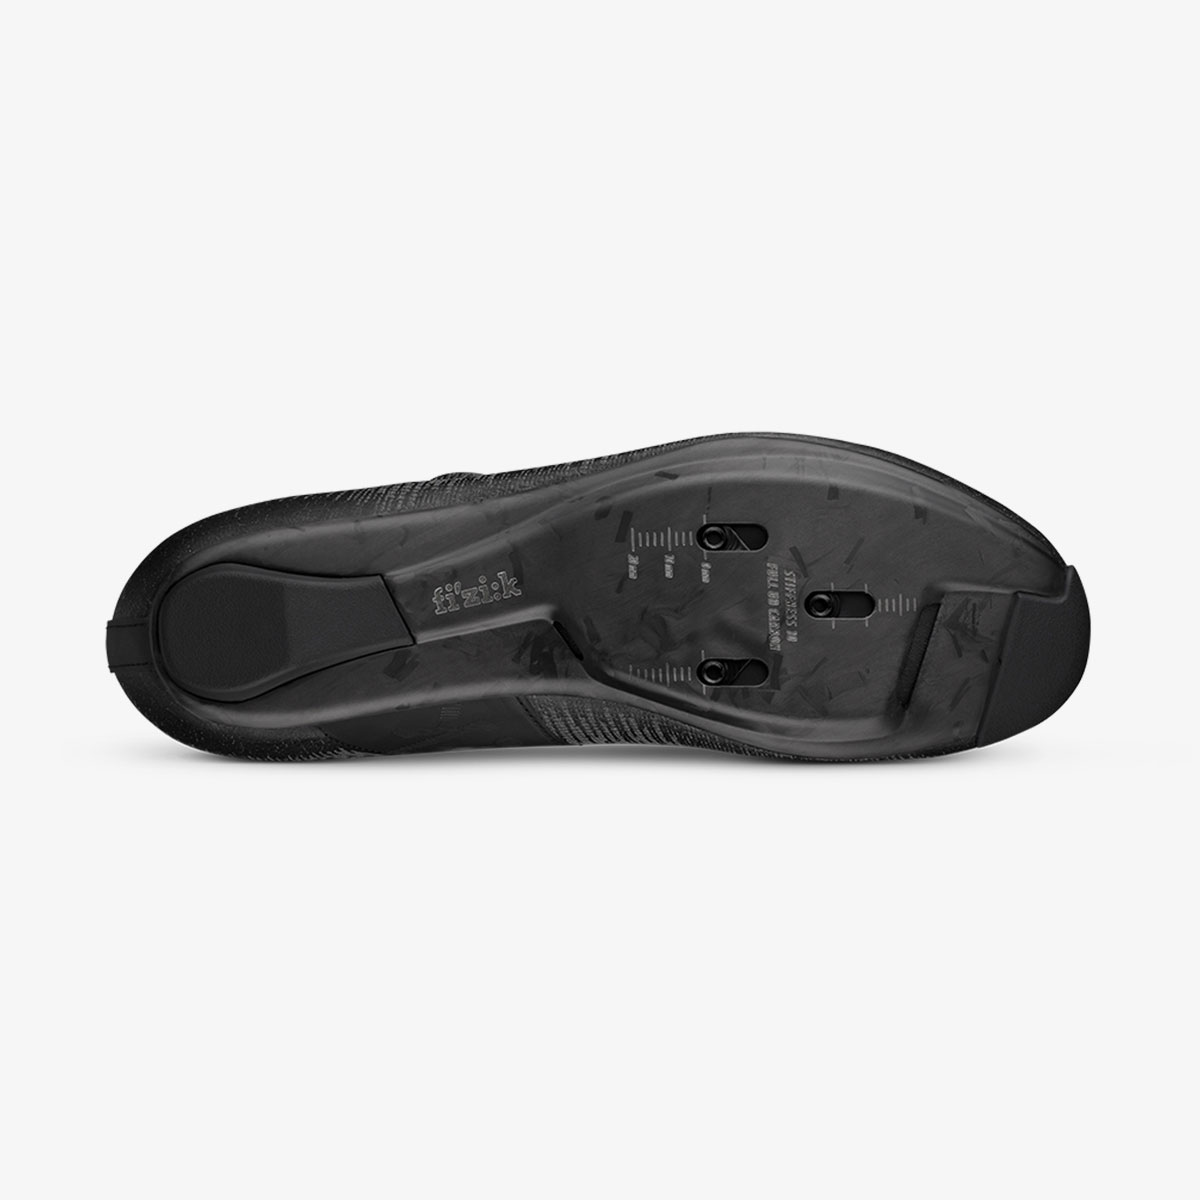 fizik-performance-cycling-shoes-vento-infinito-knit-carbon-2-wide